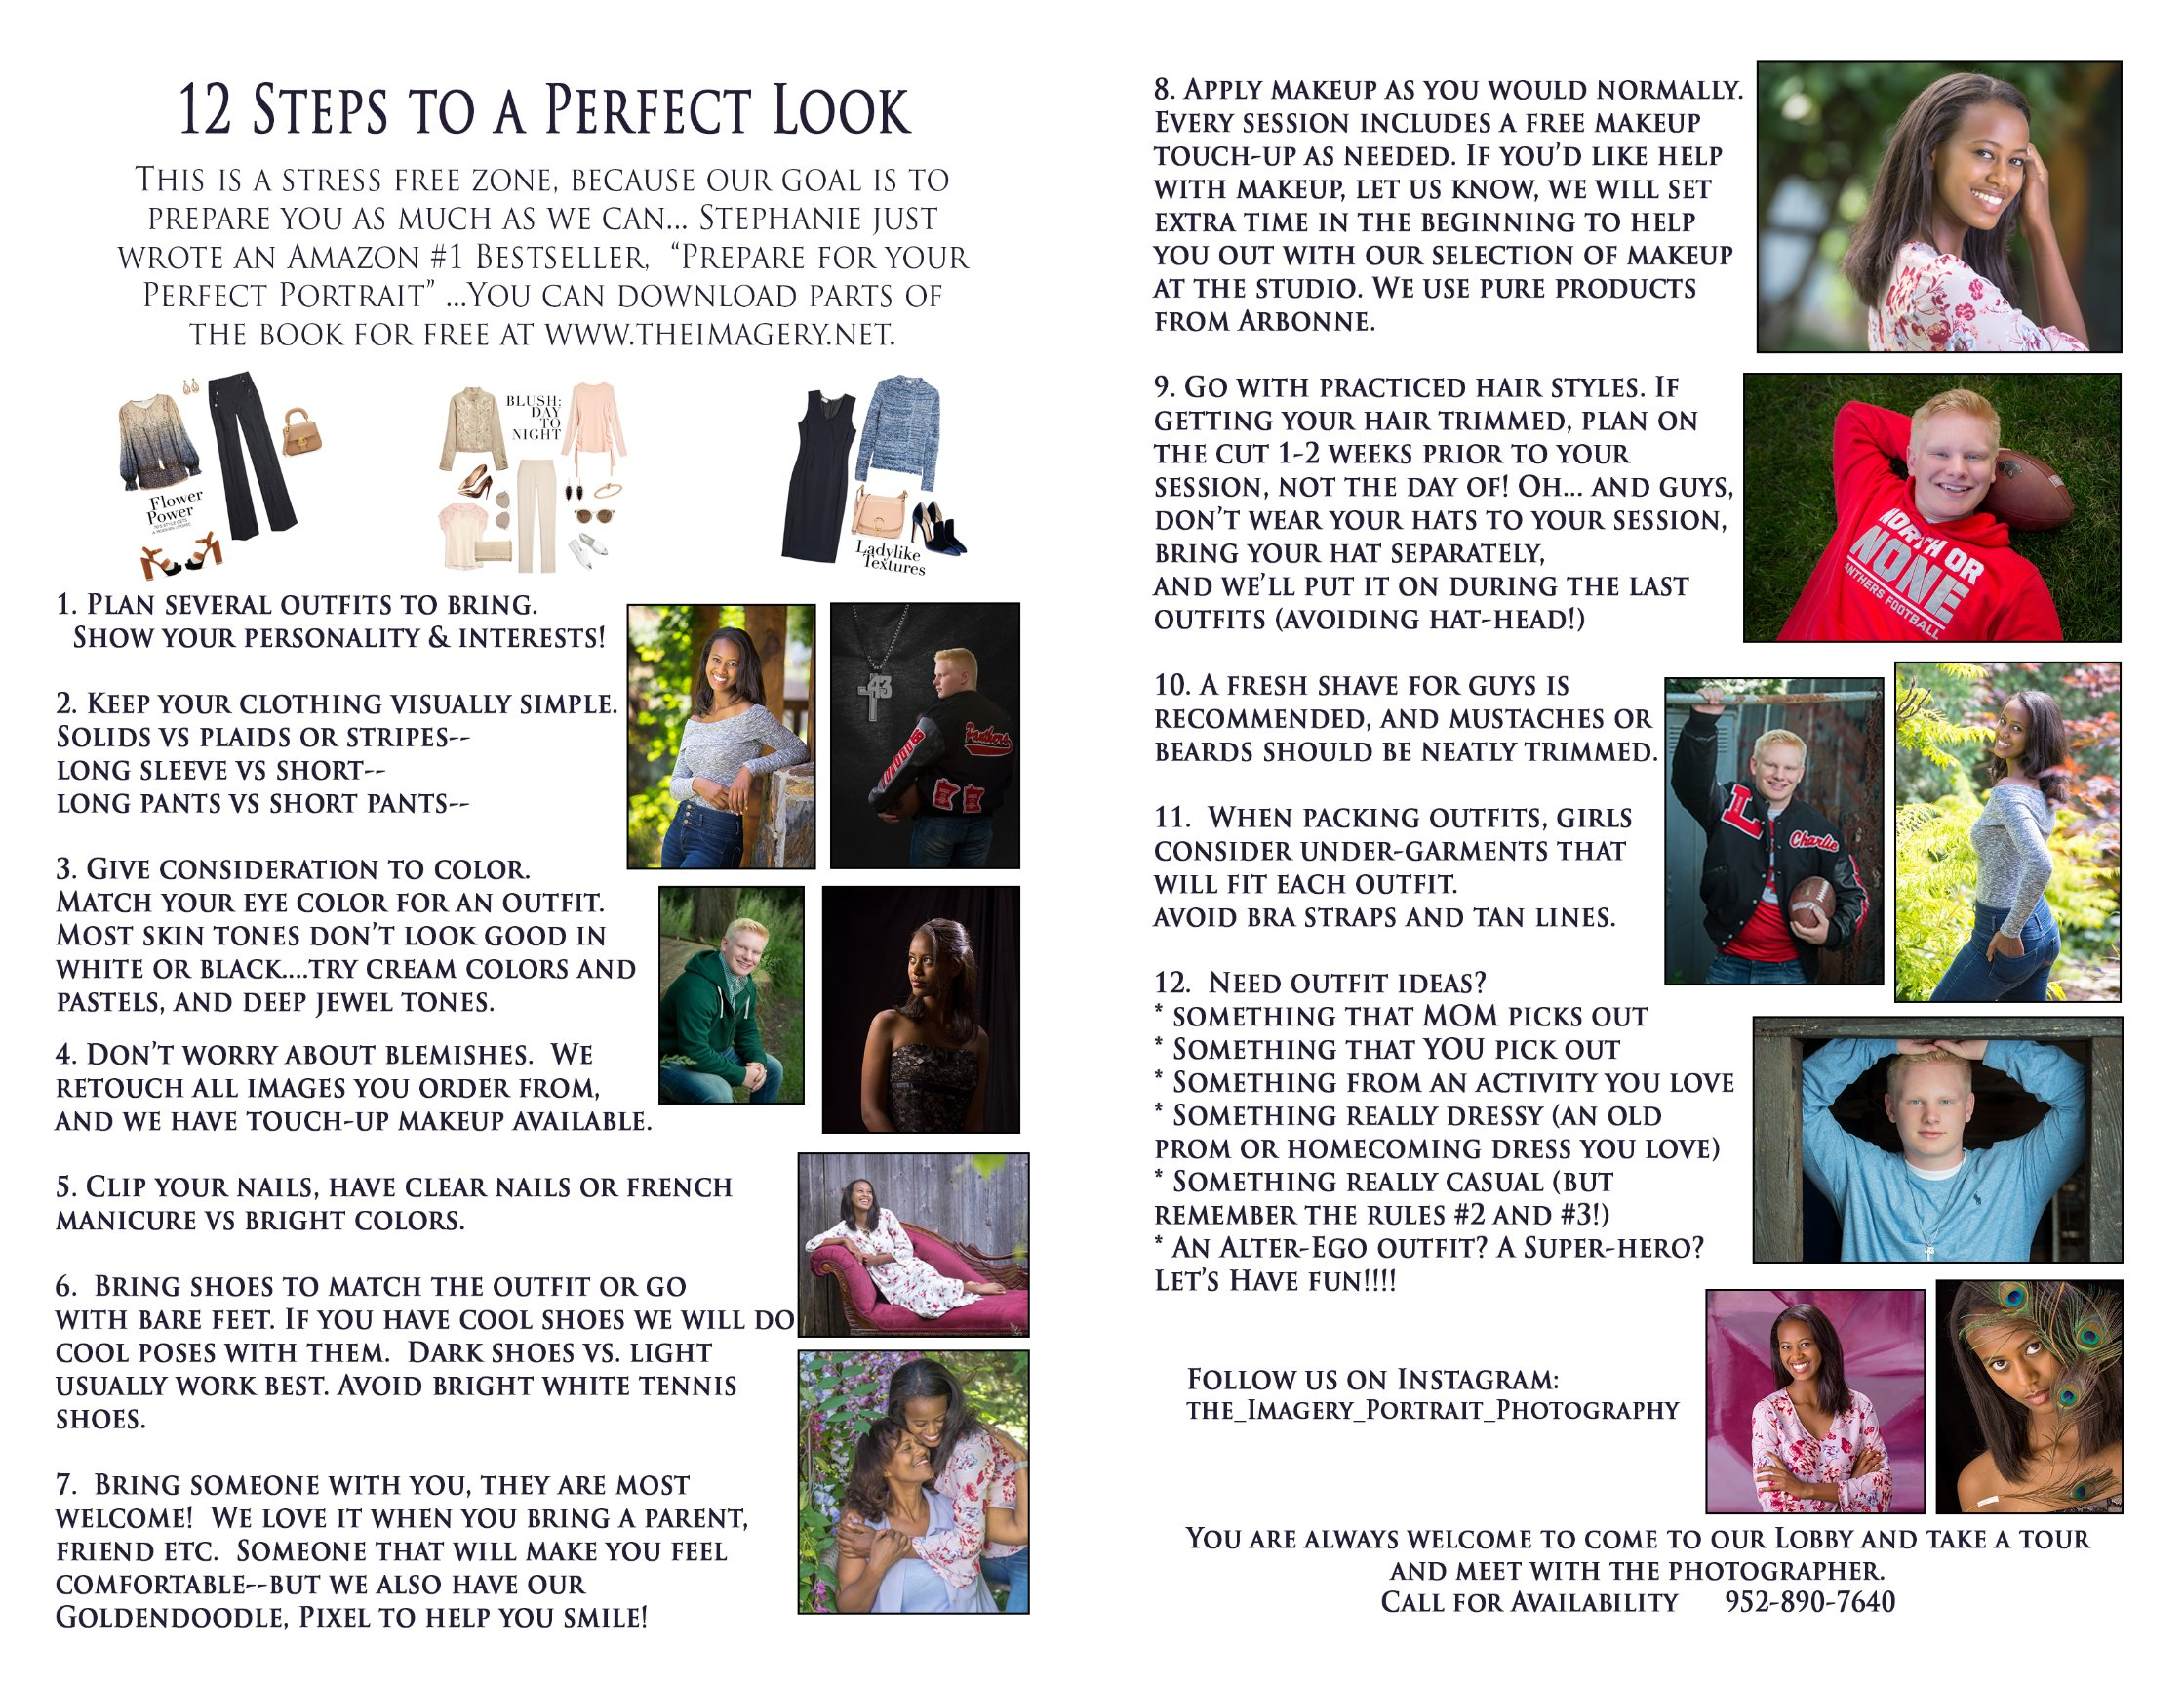 554ea21c1 How to get Perfect Senior Pictures in 12 steps - The Imagery